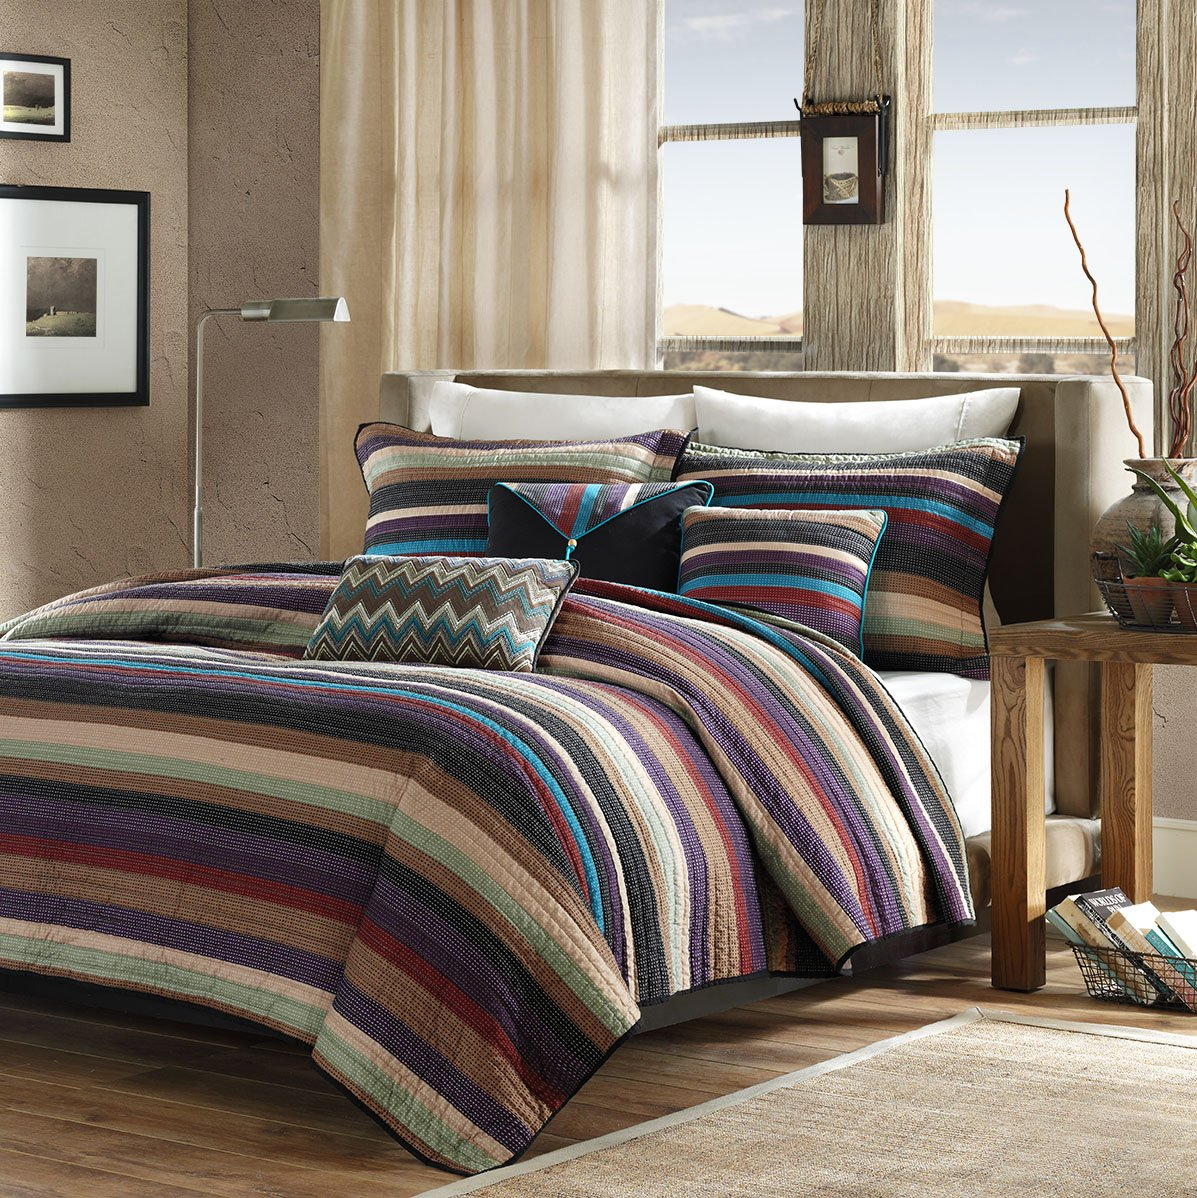 Madison Park Yosemite Twin/Twin XL Size Quilt Bedding Set - Purple Yellow Teal, Striped – 5 Piece Bedding Quilt Coverlets – Cotton Bed Quilts Quilted Coverlet Luxury Home MP13-2582